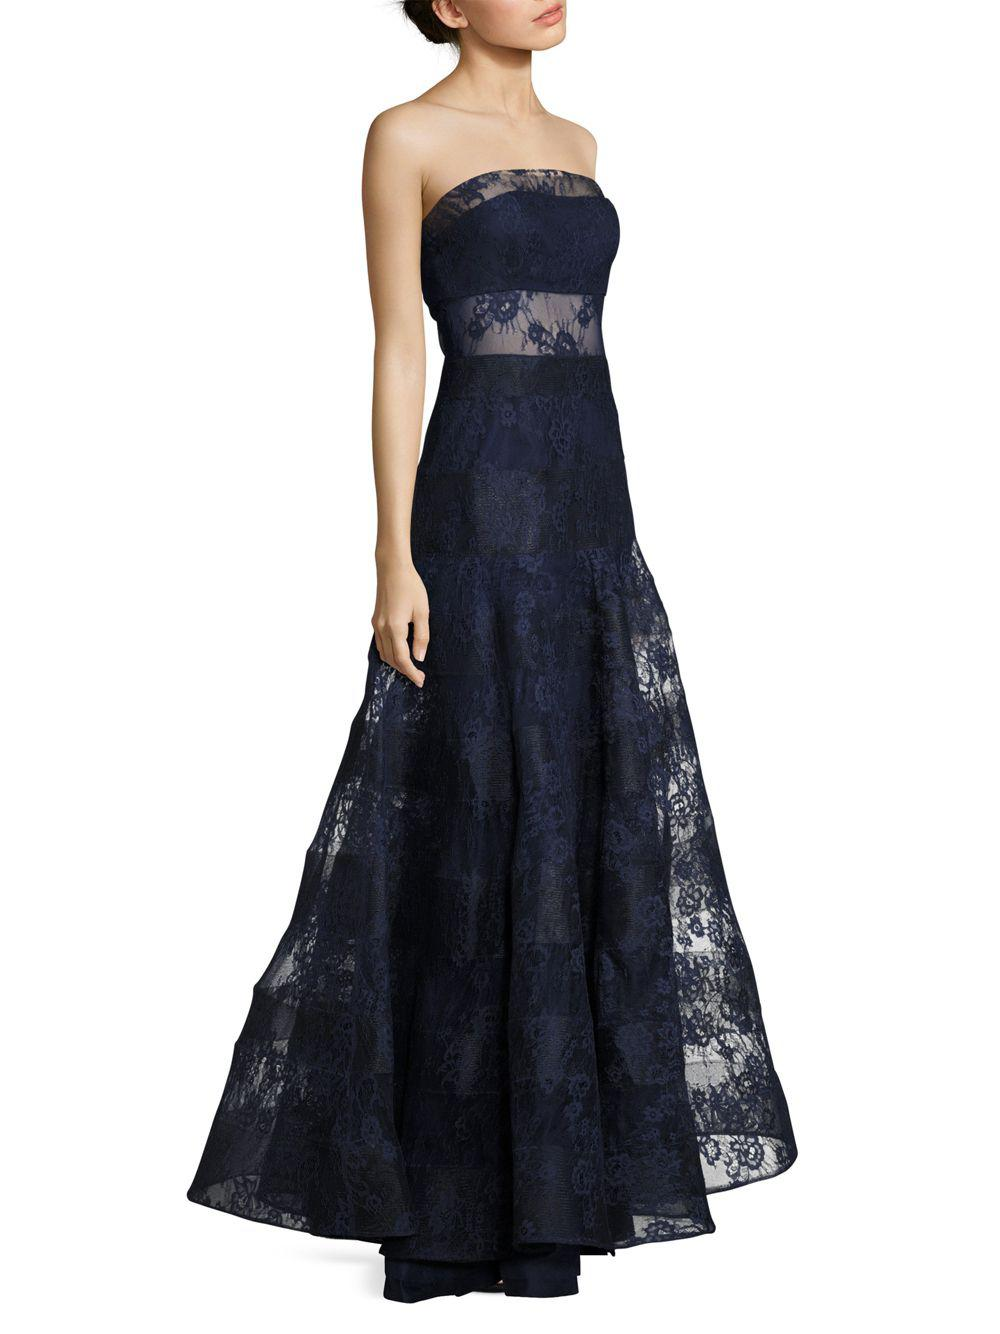 Lyst - Basix Black Label Strapless Lace Gown in Blue - Save ...